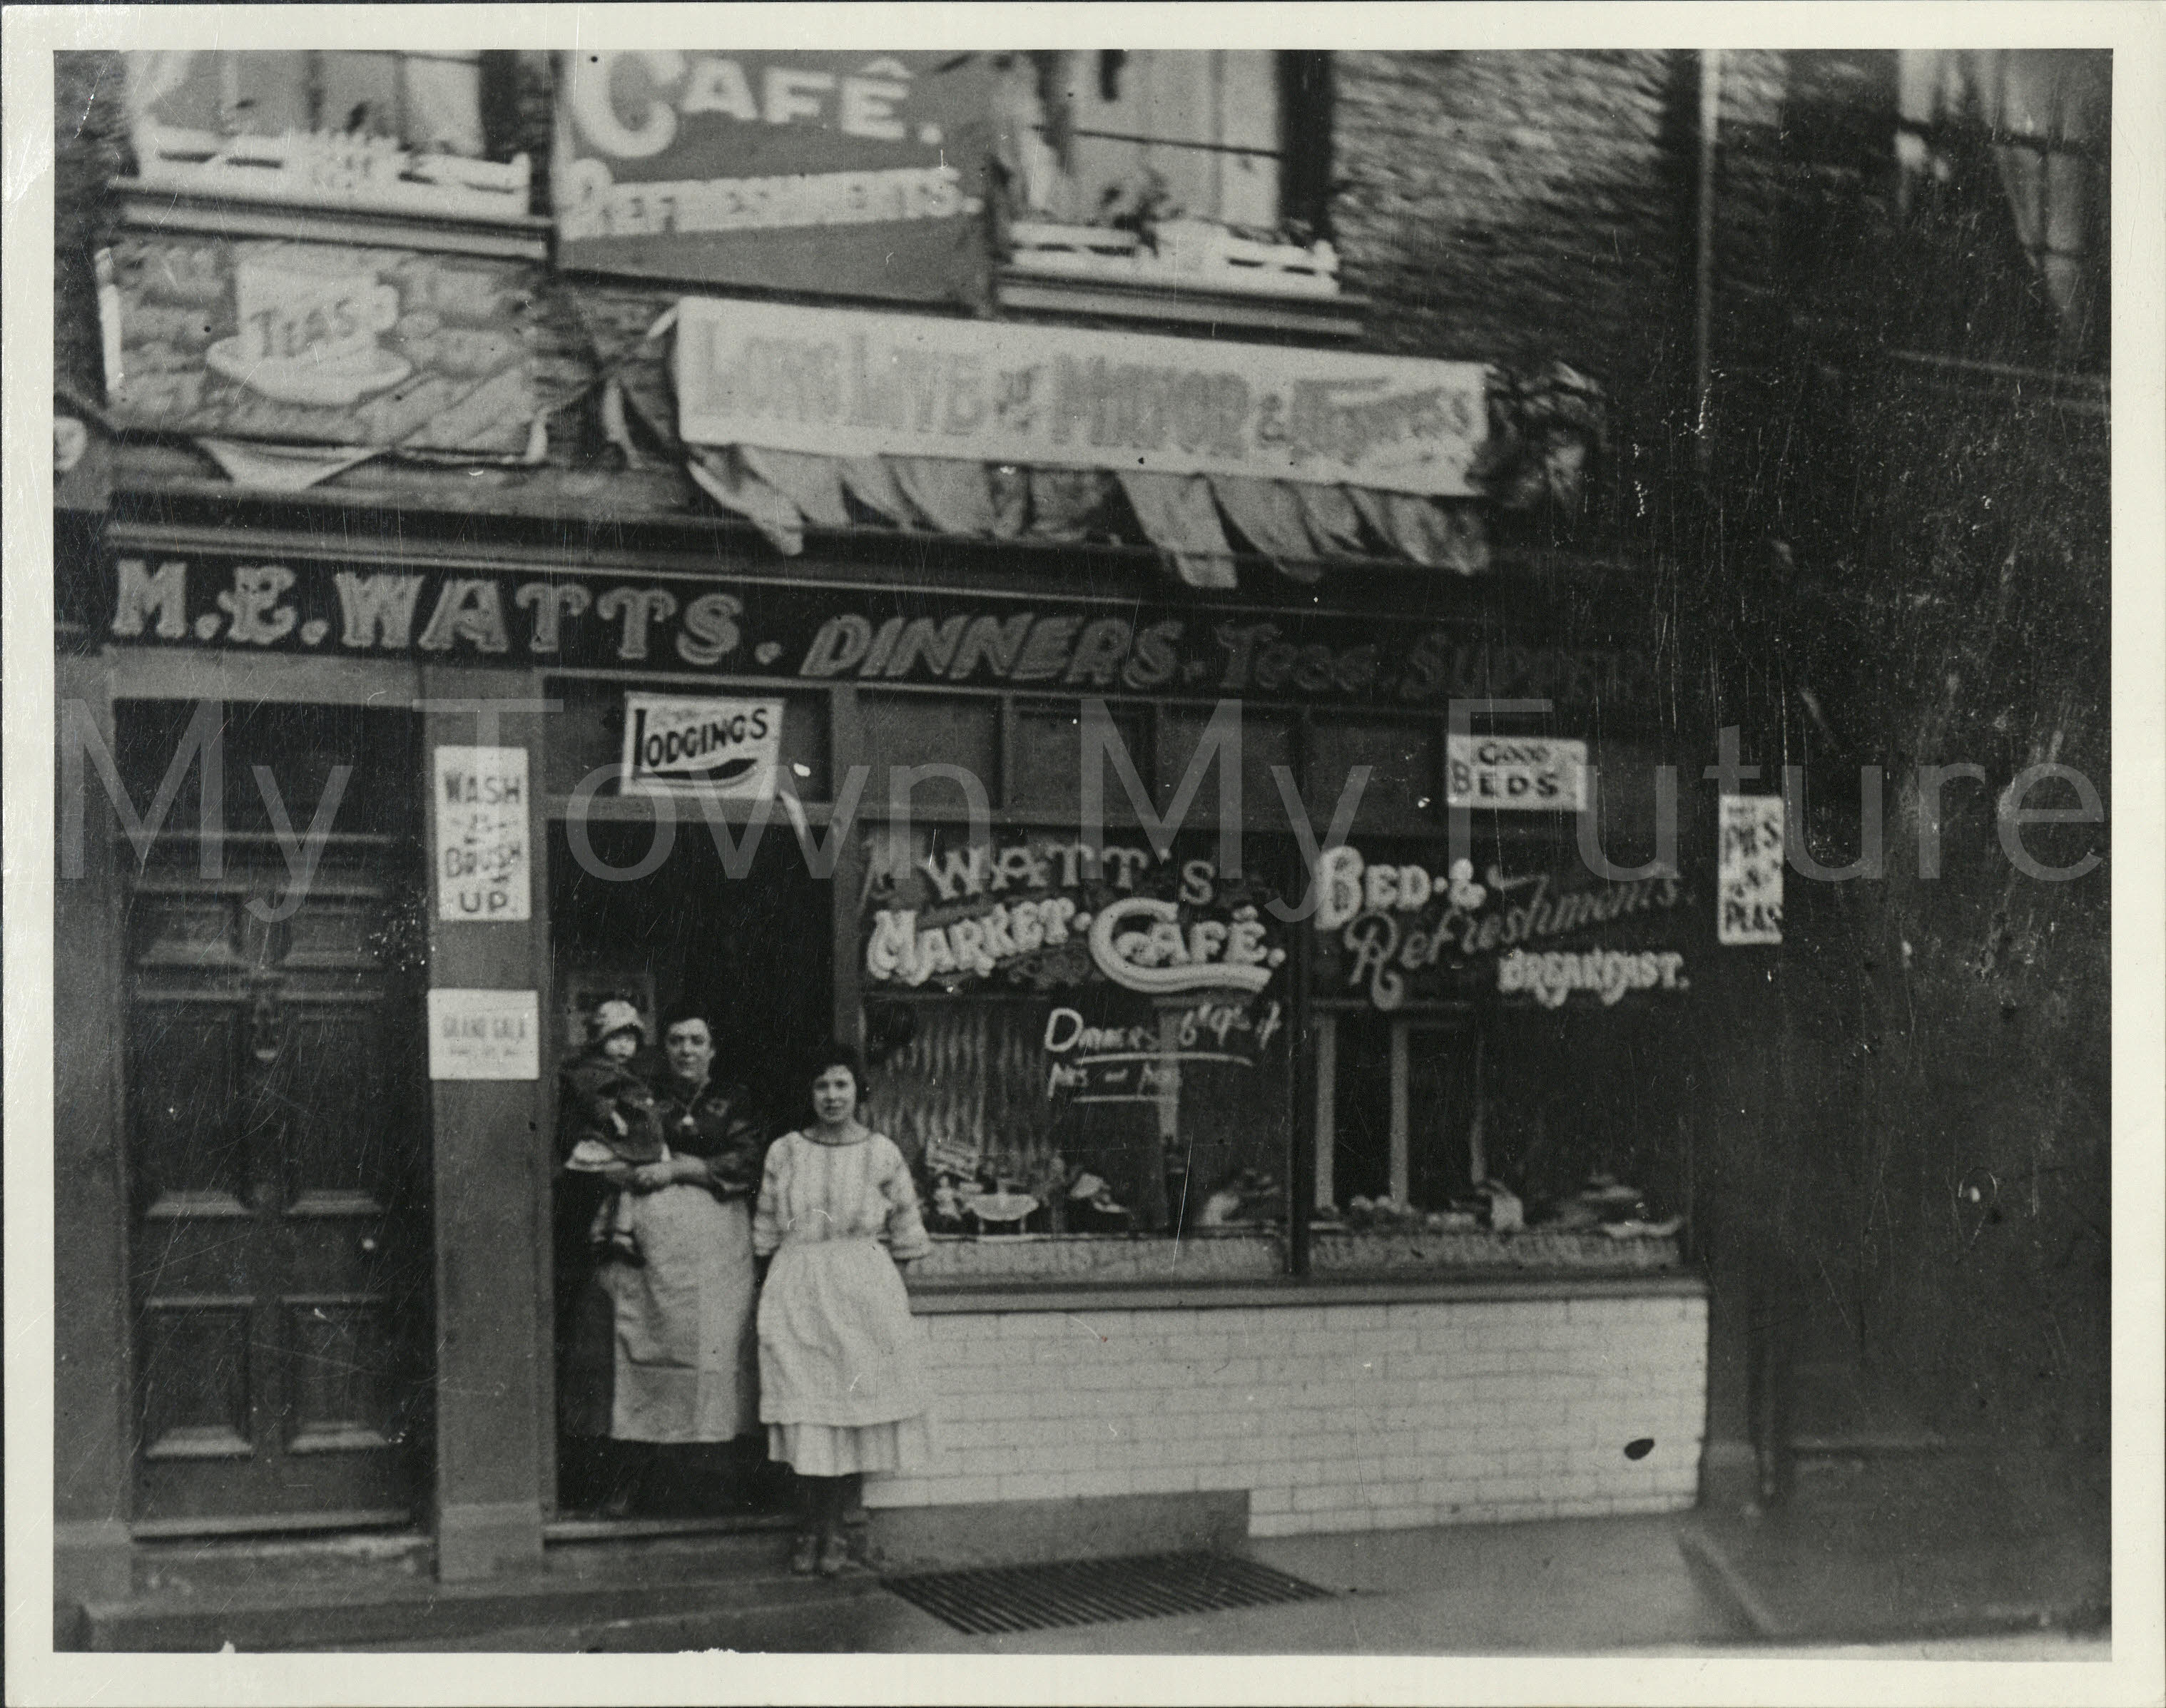 Margaret Watts, cafe and lodging house 6 Darce street 1920